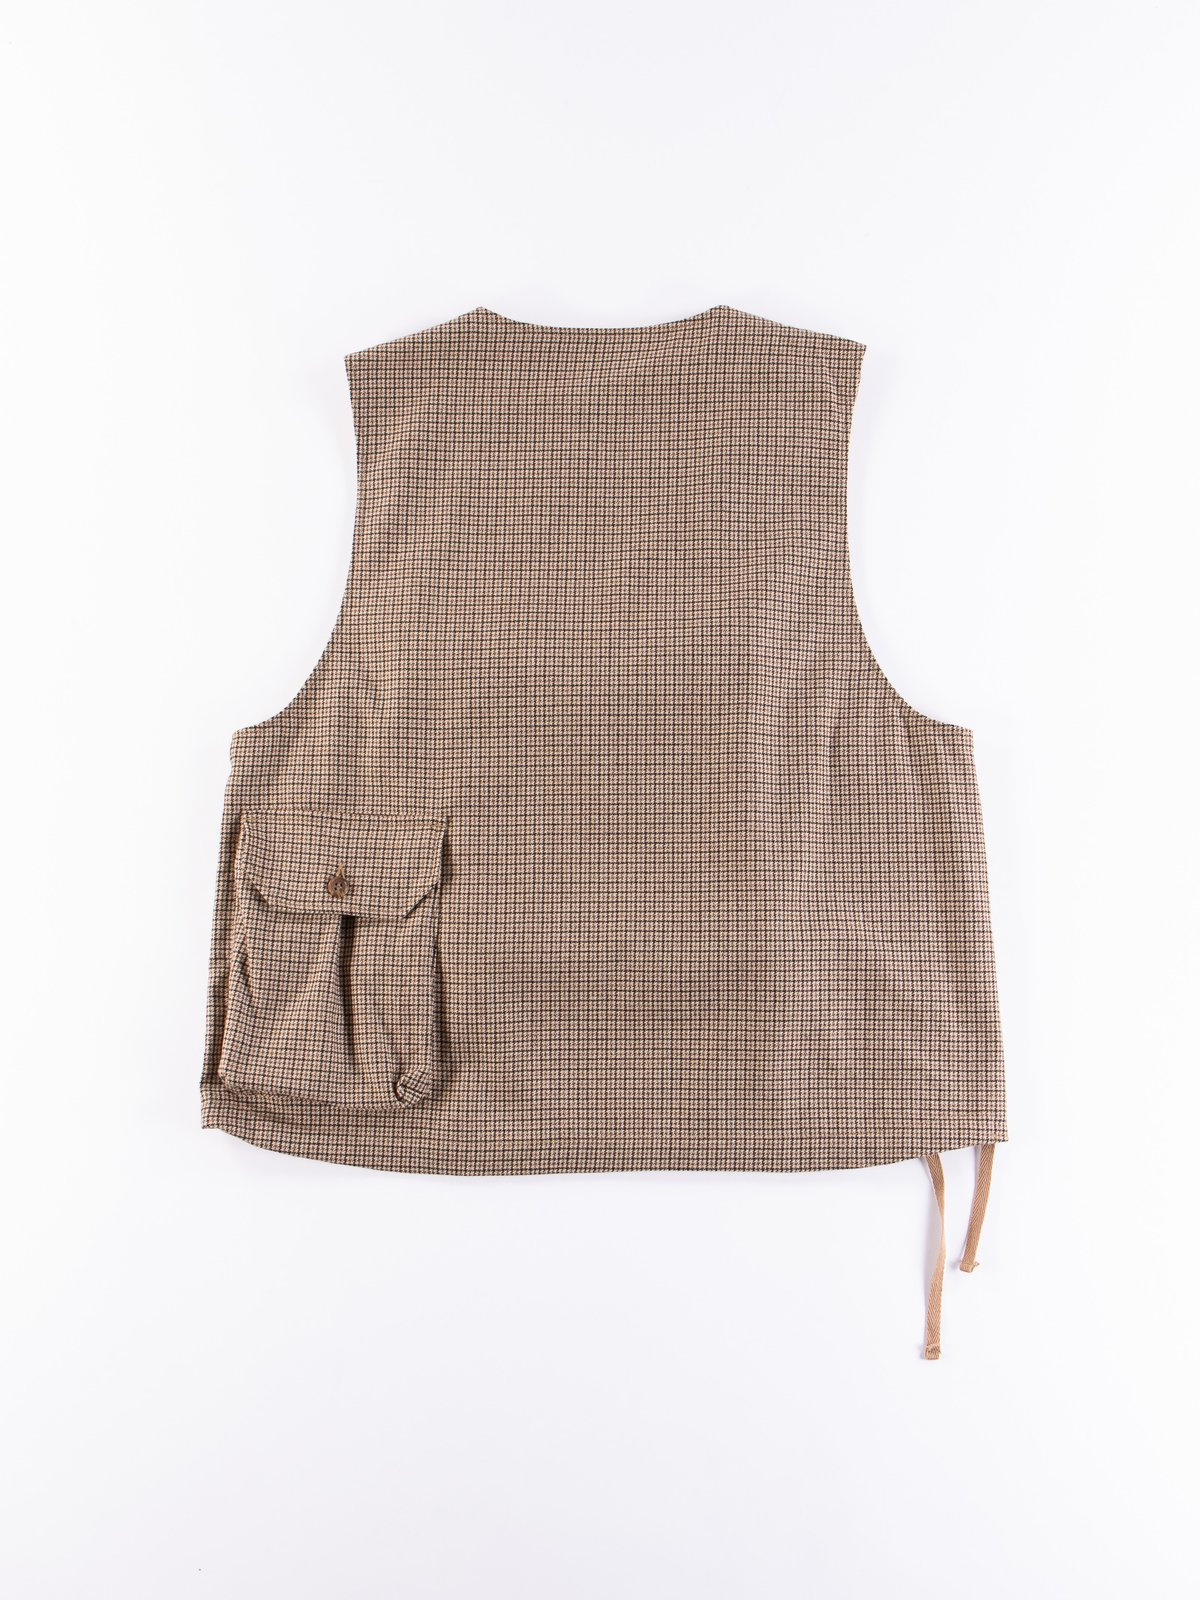 Brown Wool Poly Gunclub Check Cover Vest - Image 6